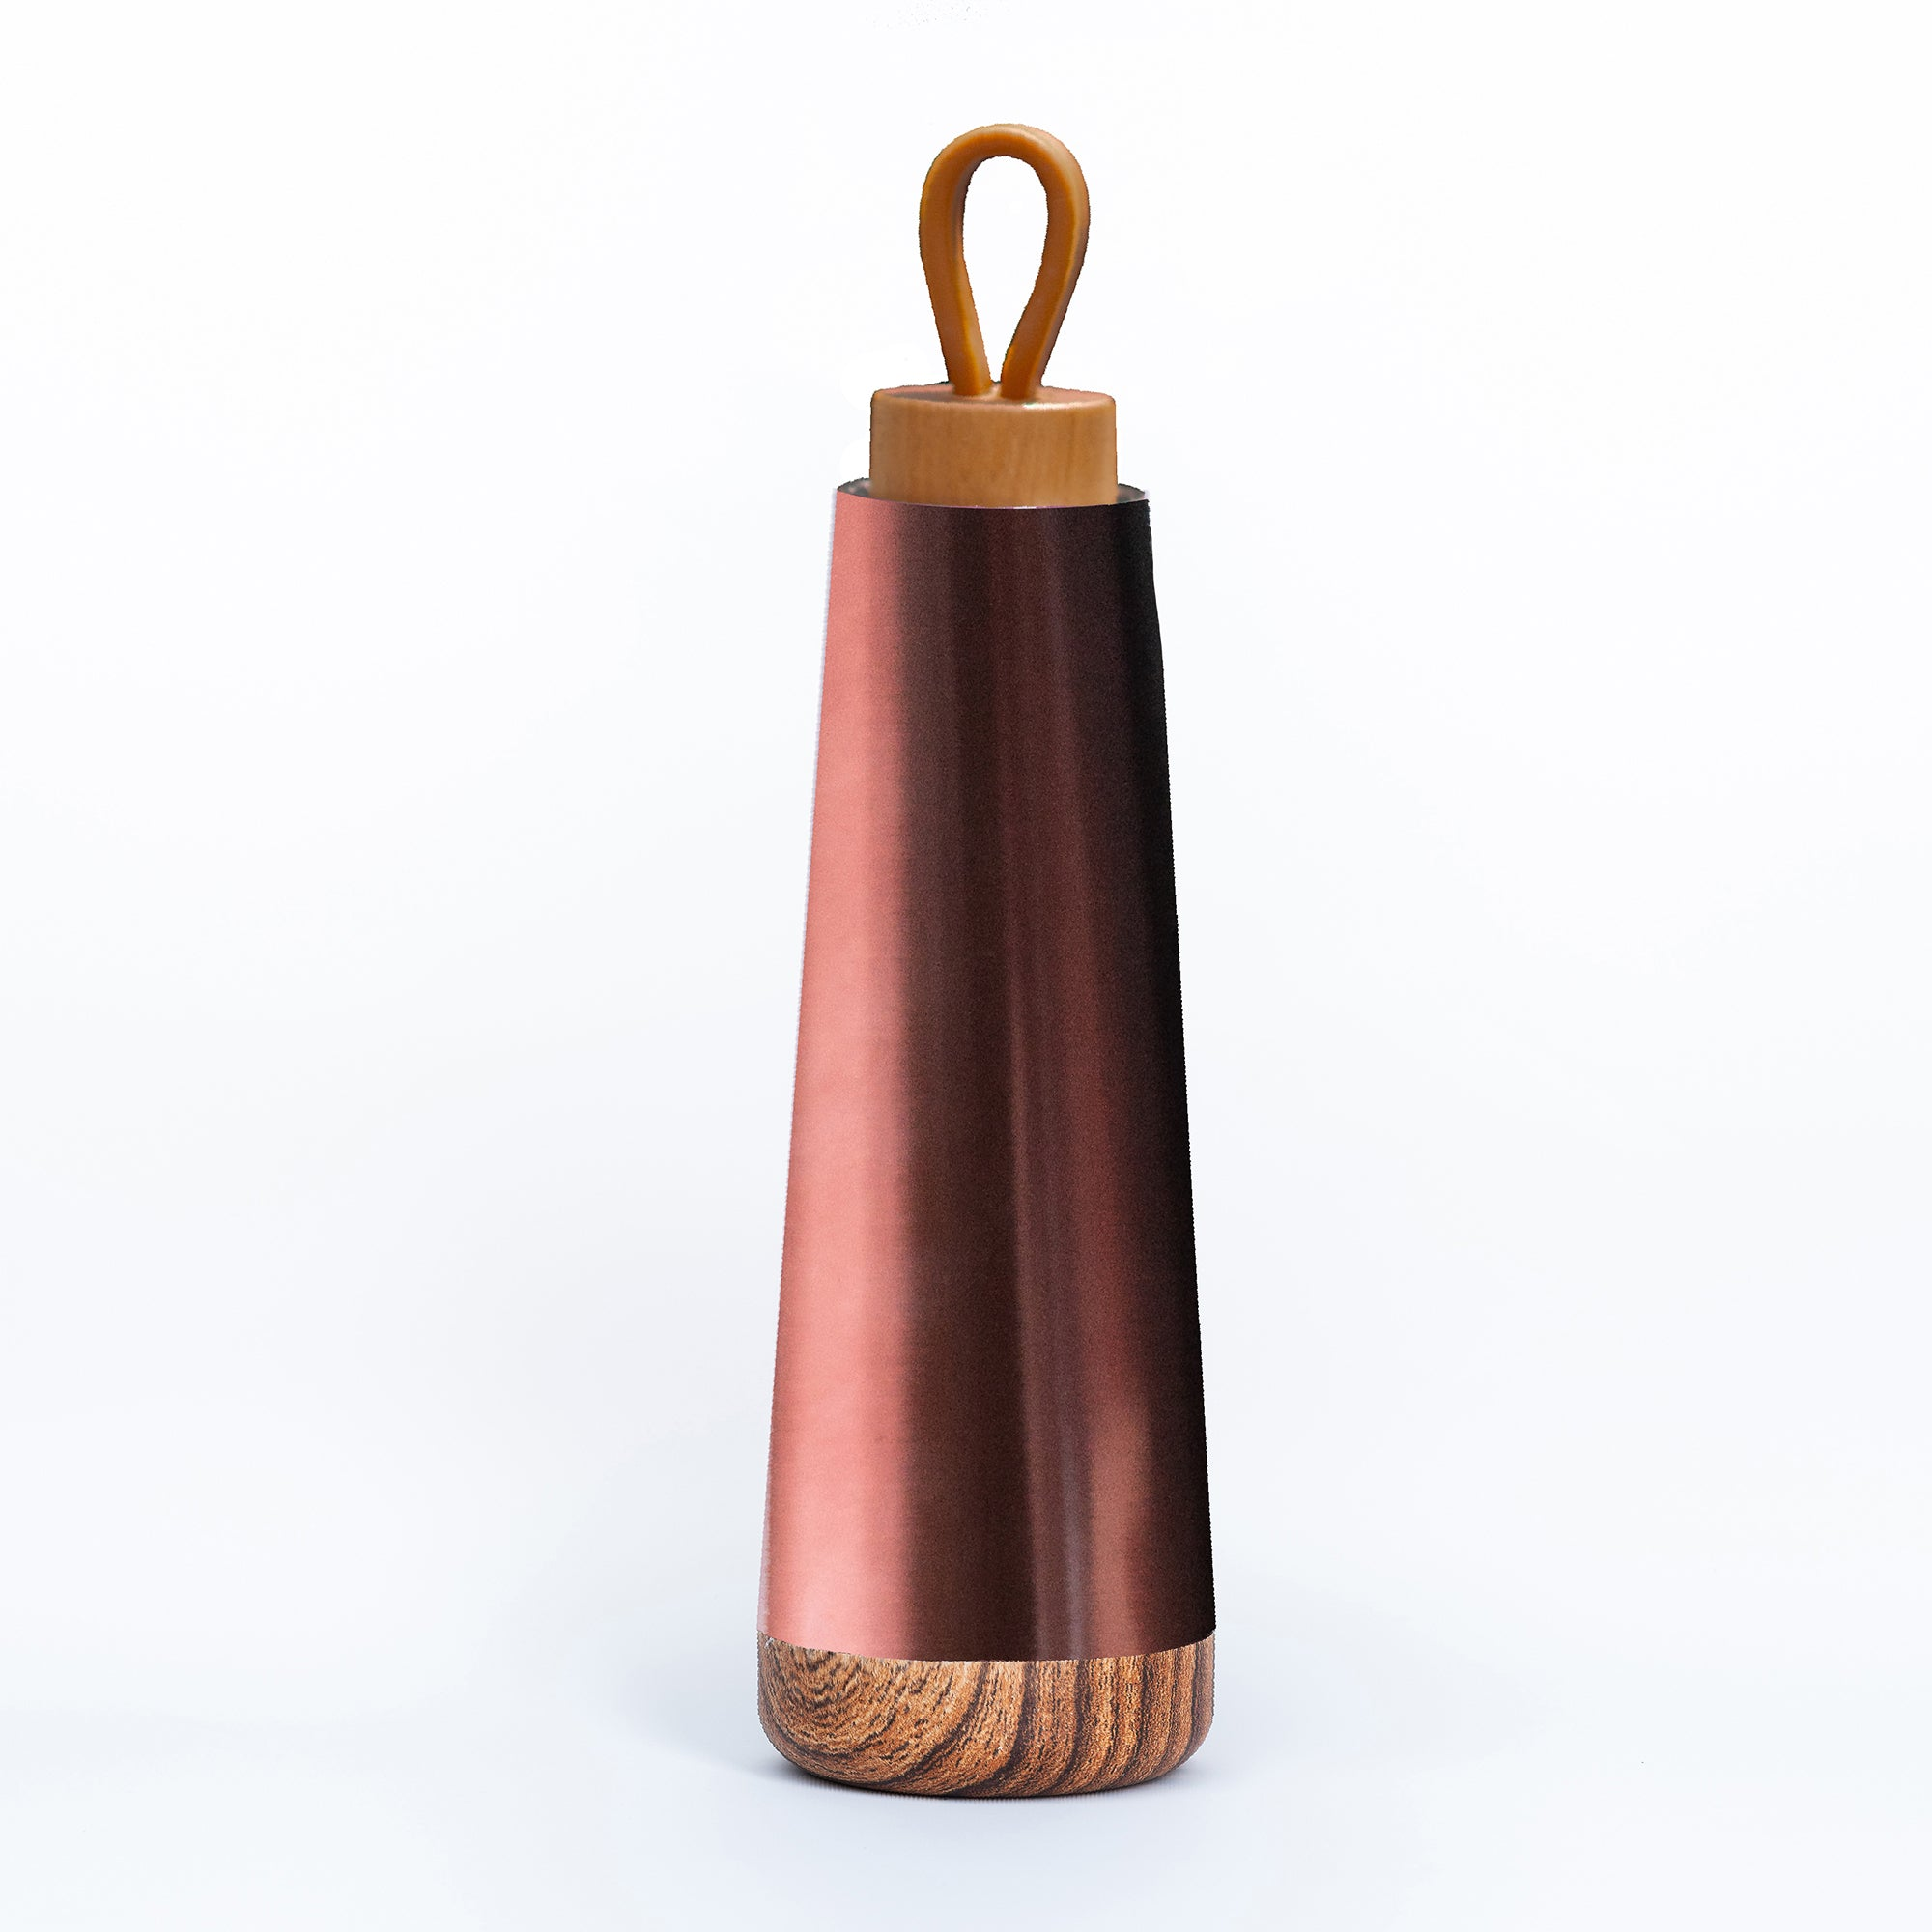 Bioloco Loop Copper Water Bottle